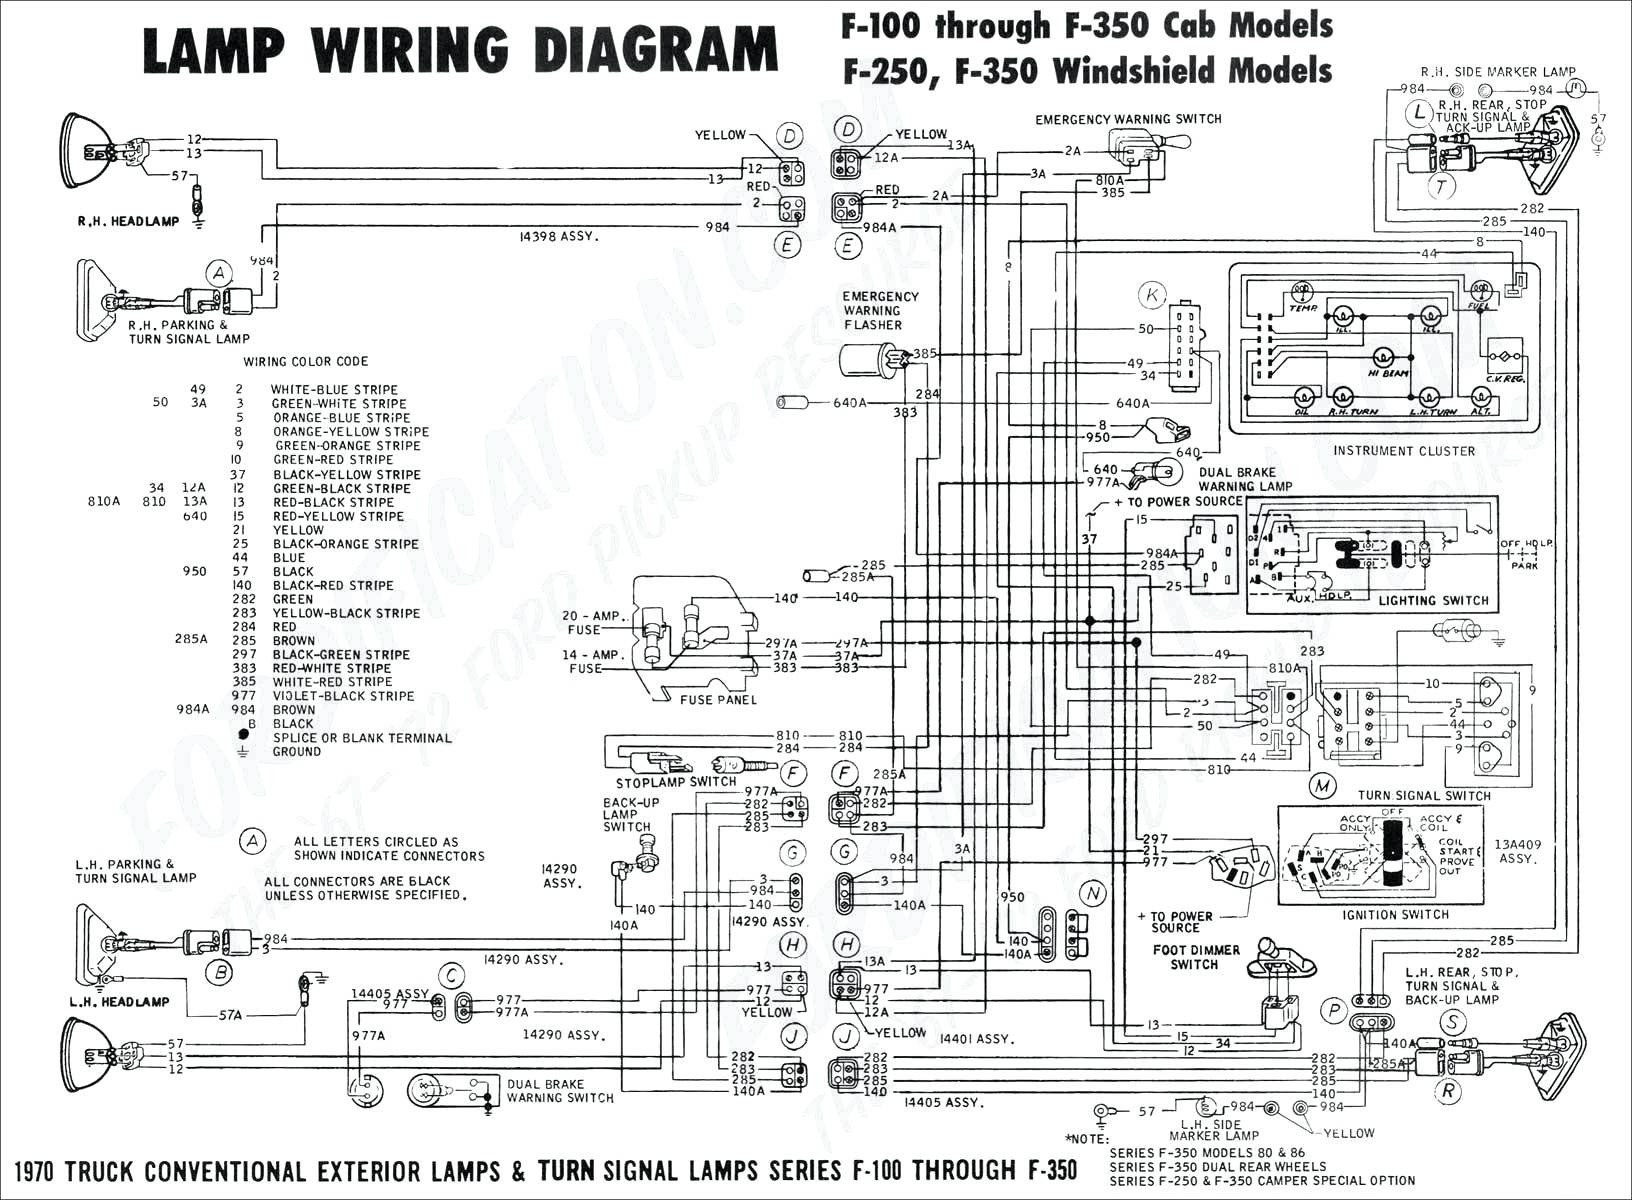 wiring diagram besides 2015 ford f 250 aux switch wire location as rh  abetter pw 2003 Gmc Sonoma Fuse ...